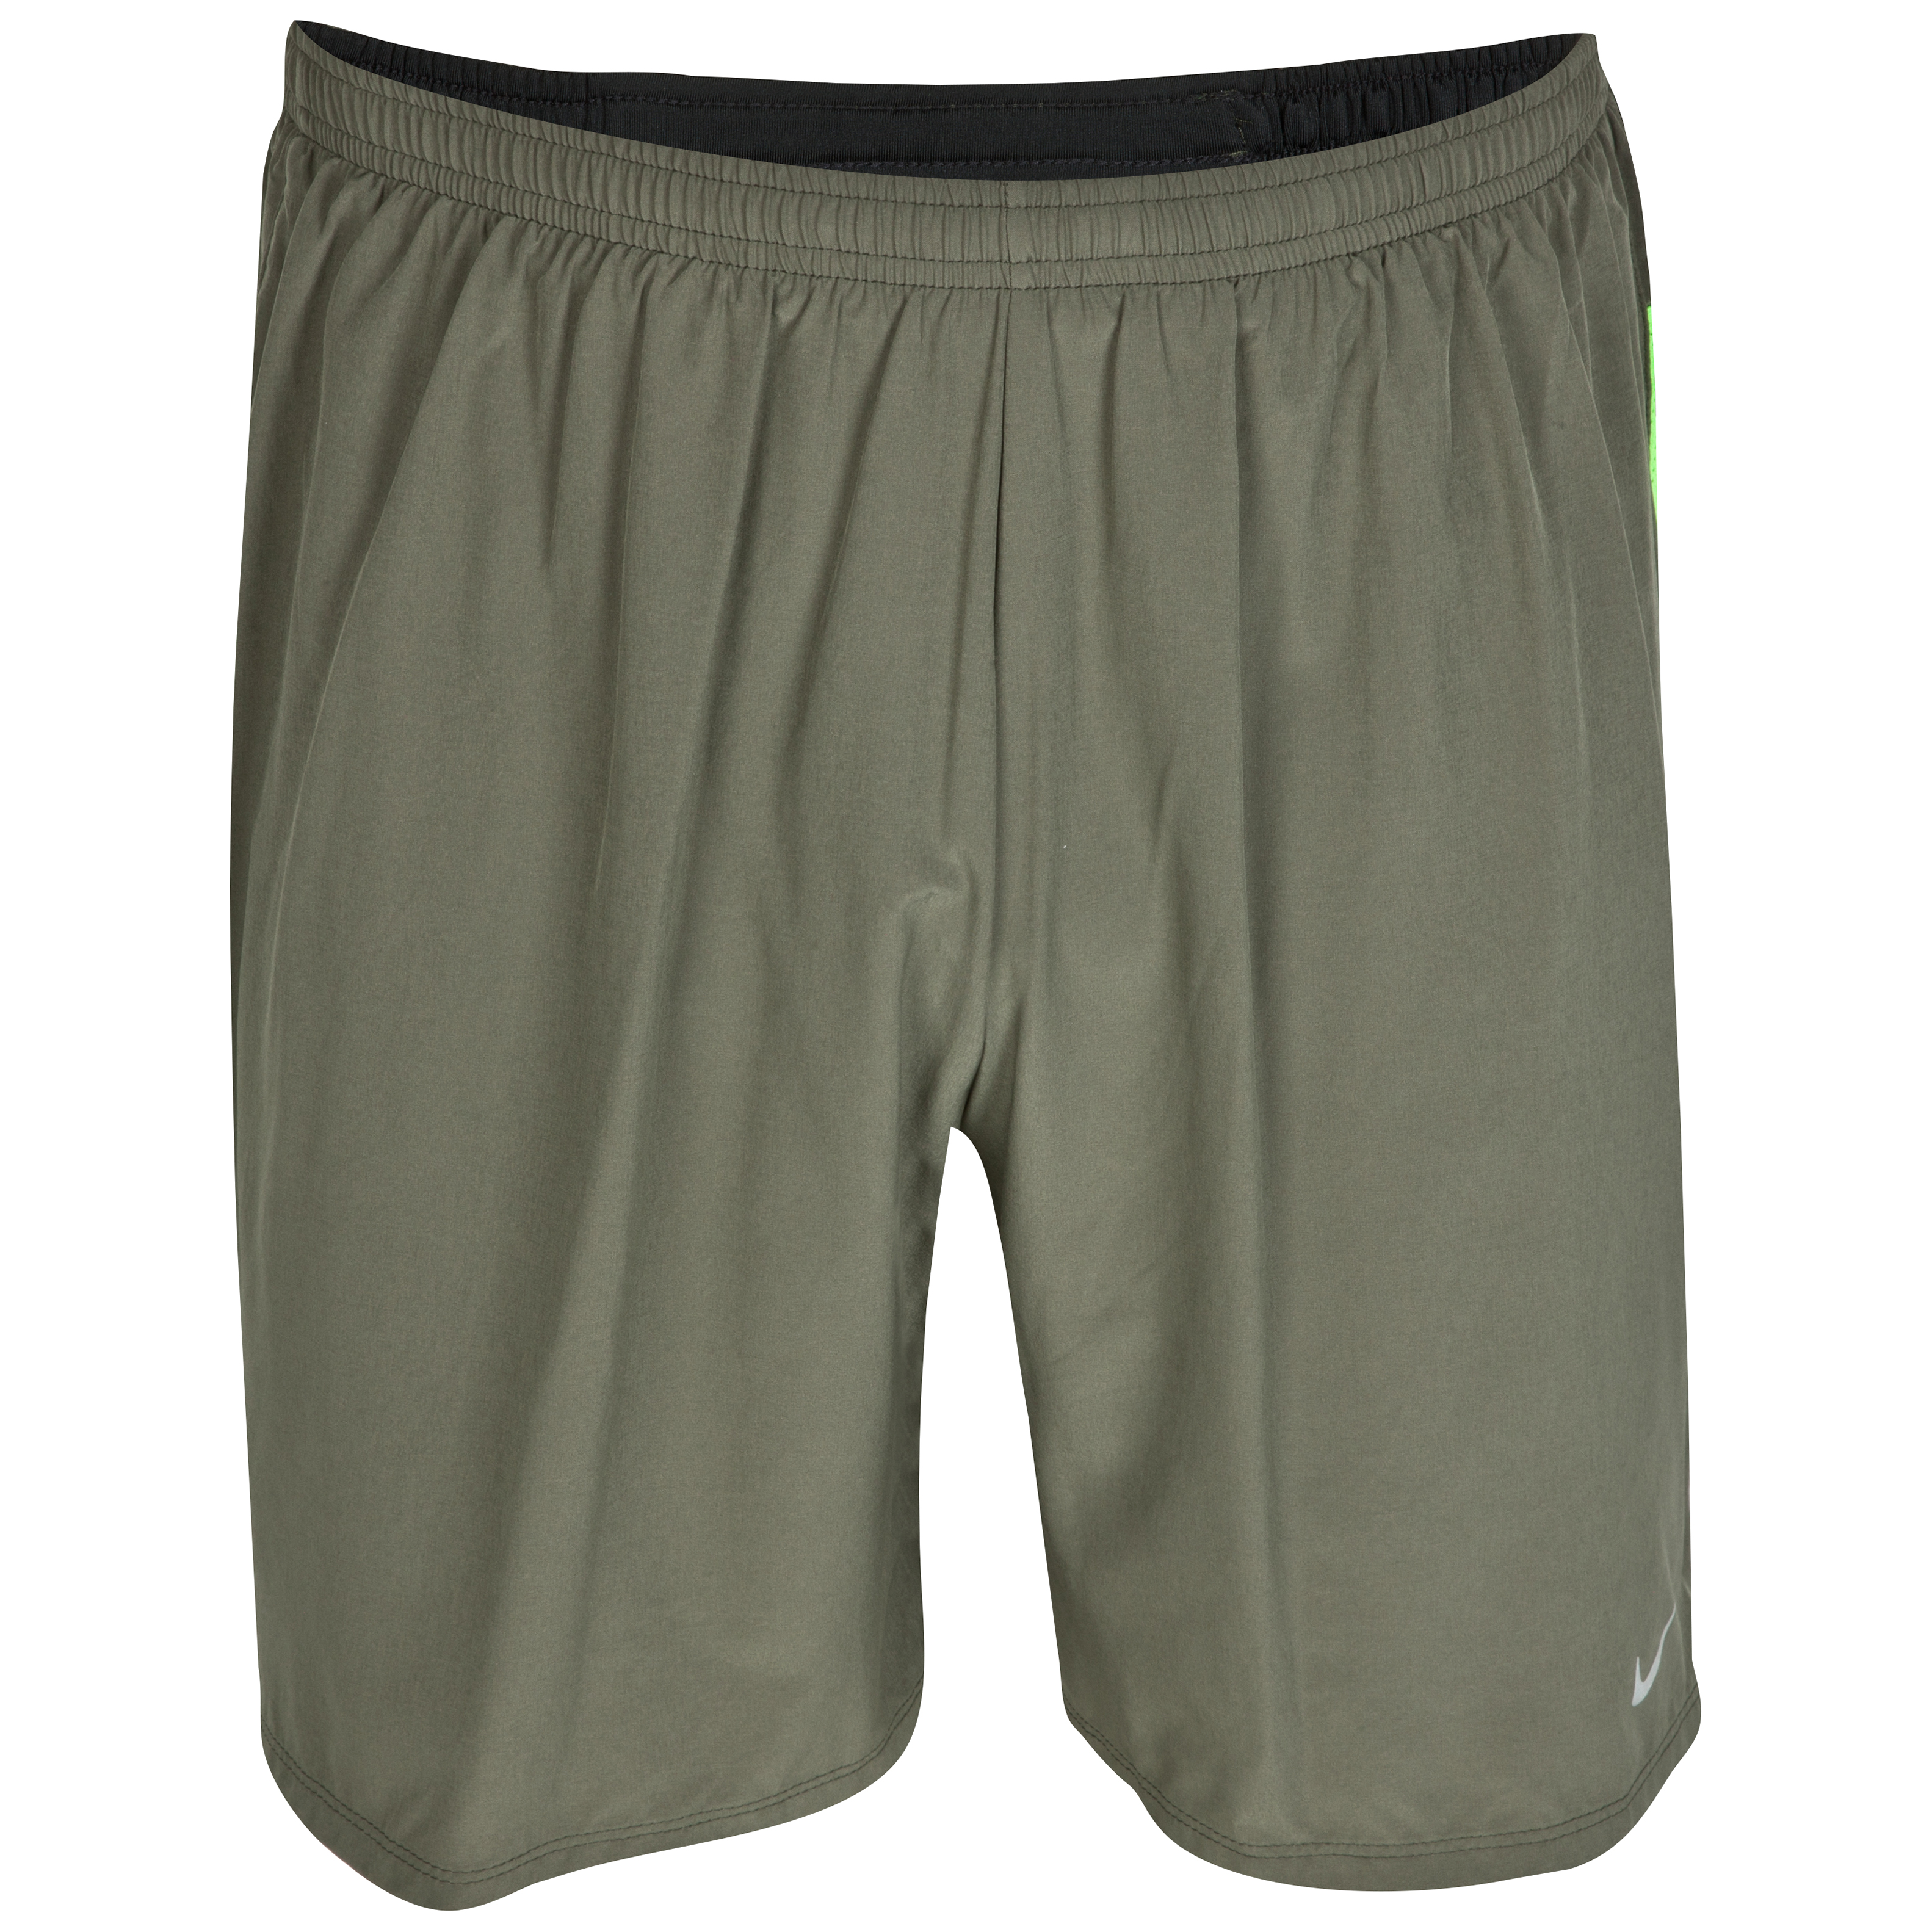 Nike 7inch Stretch Woven 2-in-1 Shorts - Sequoia/Electric Green/Reflective Silver